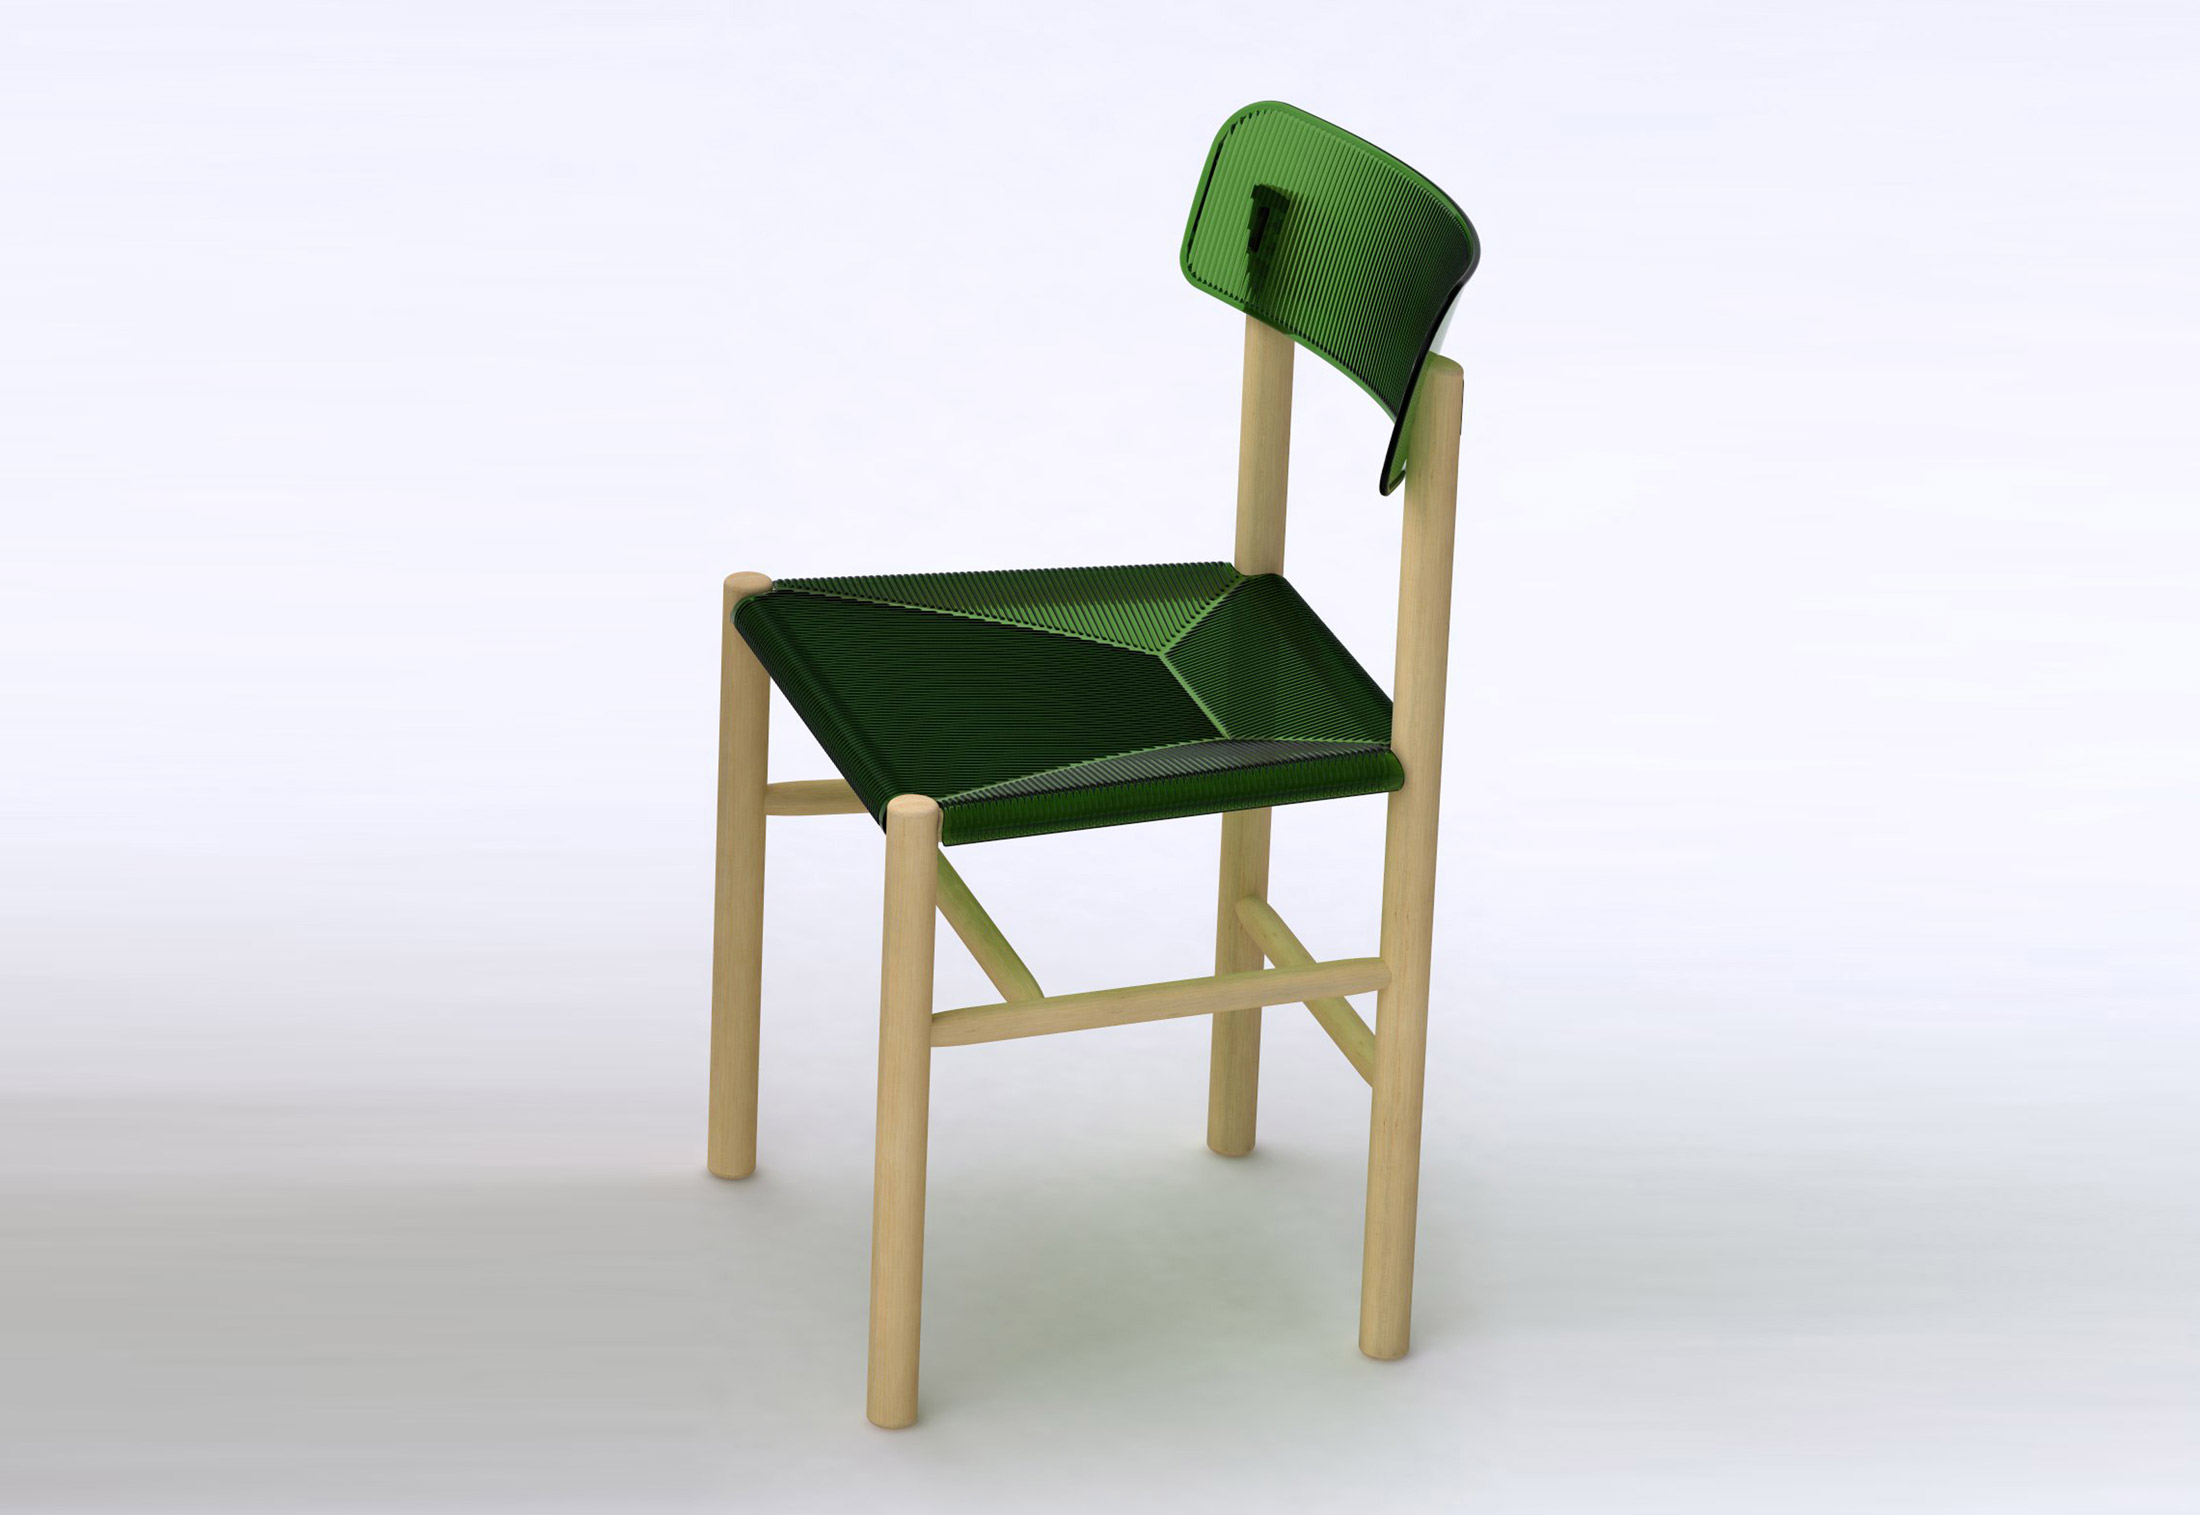 TRATTORIA chair by Magis | STYLEPARK